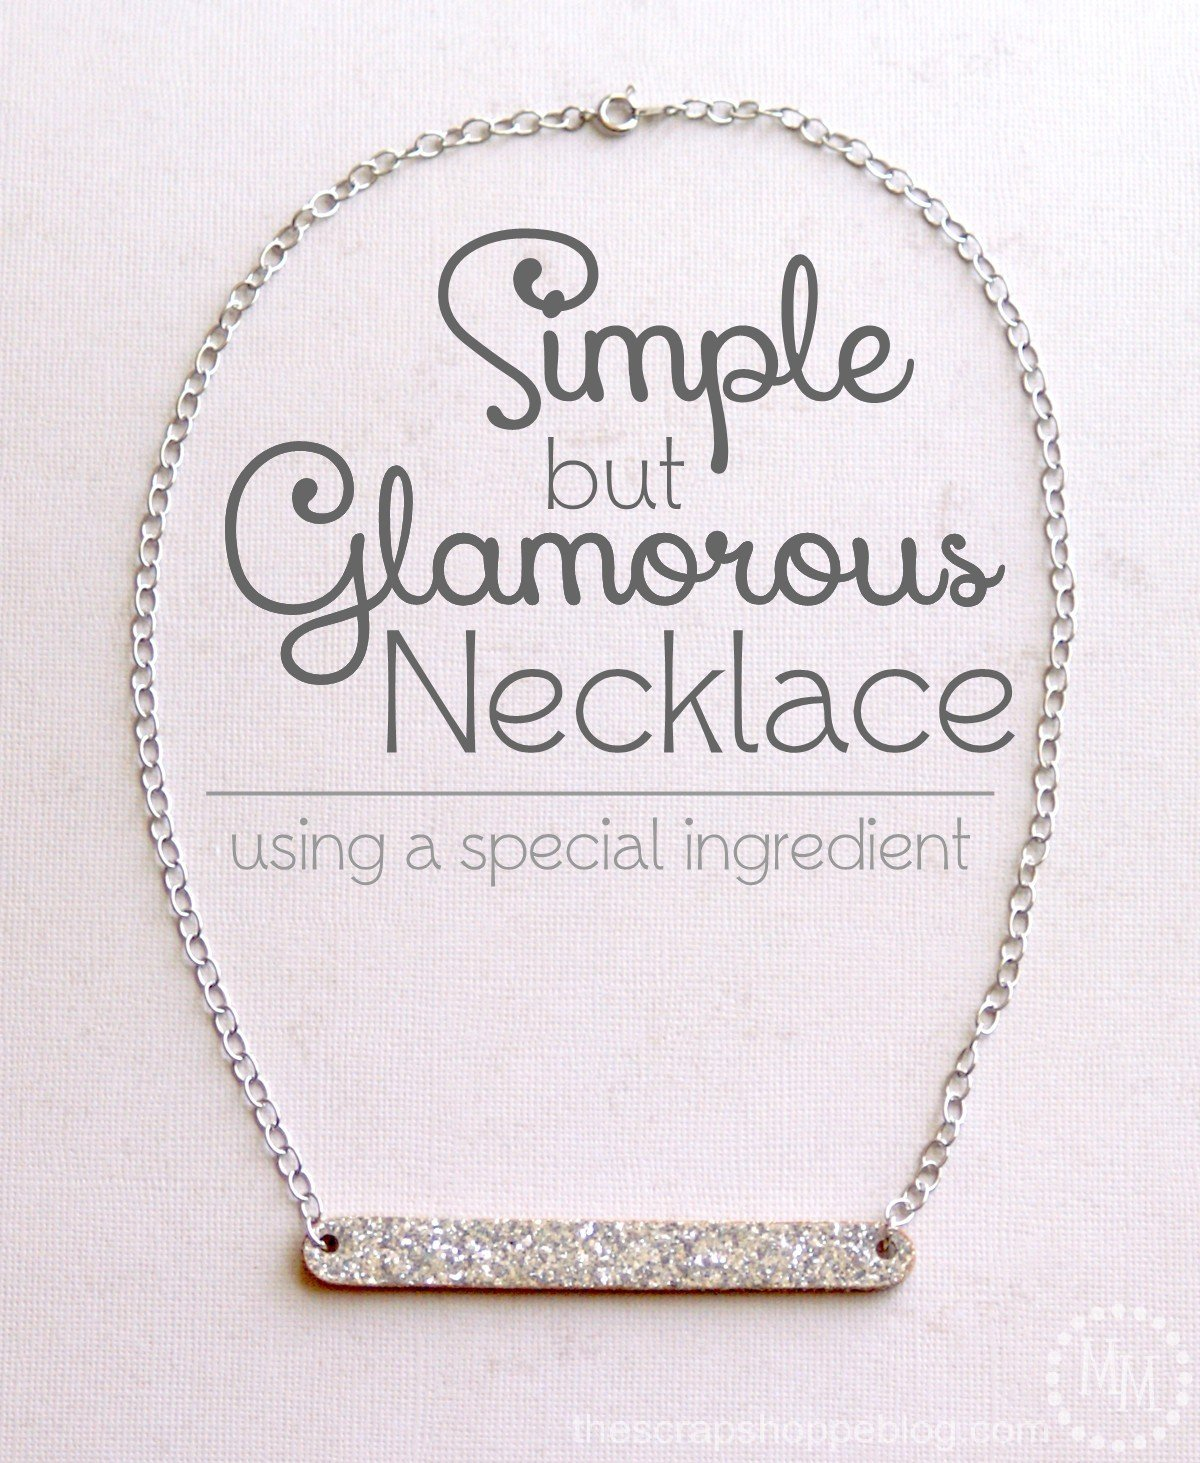 Simple glamorous necklace